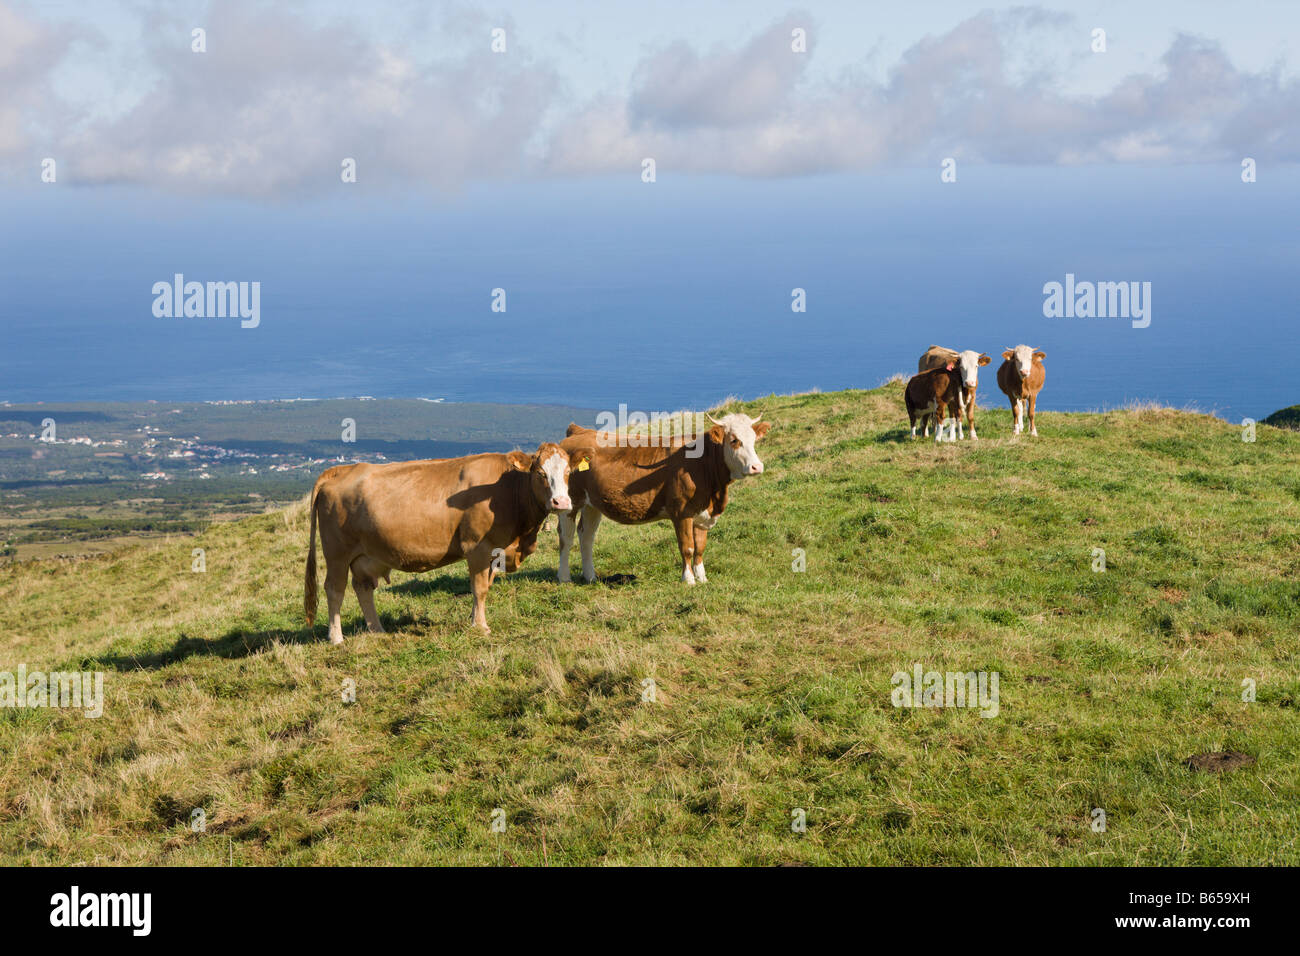 Cows on the Field Bos taurus Pico Island Azores Portugal - Stock Image